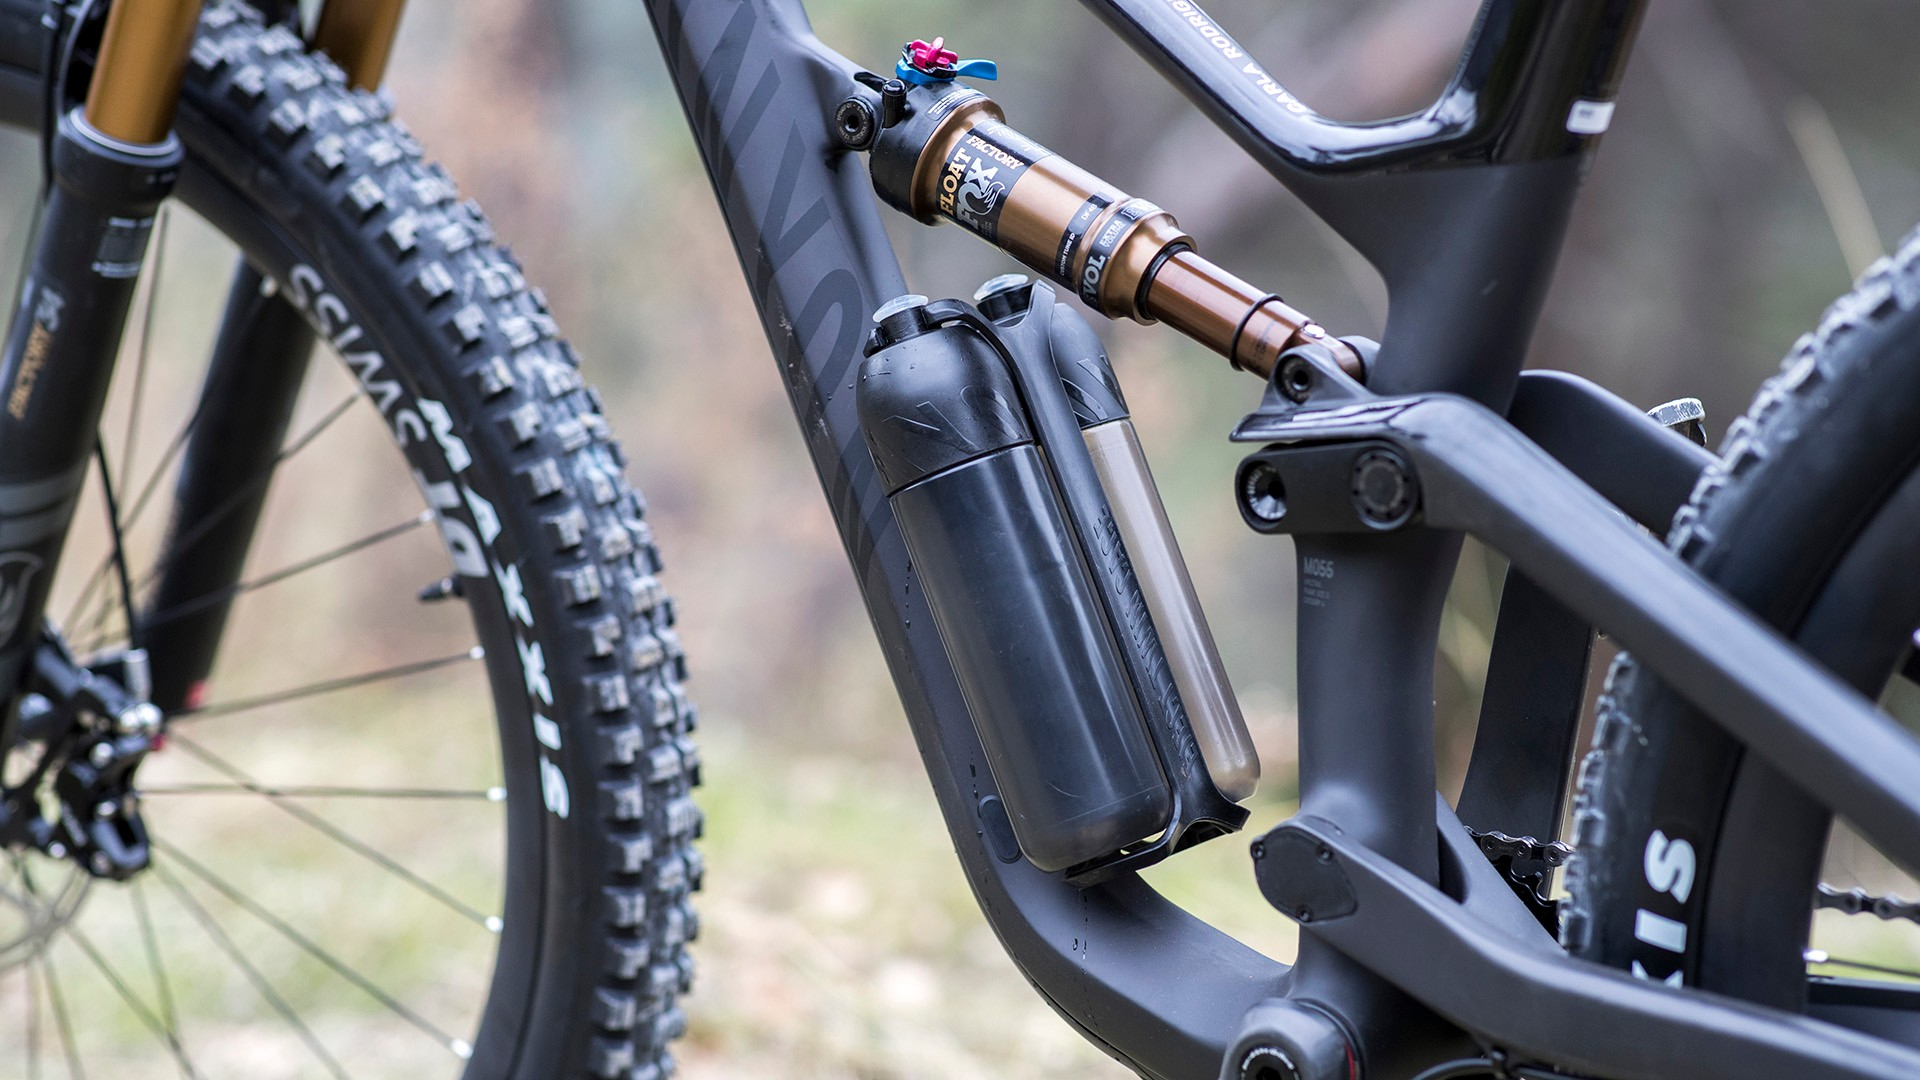 Even the 2XS size Spectral has room for a bottle cage, albeit a specially designed one